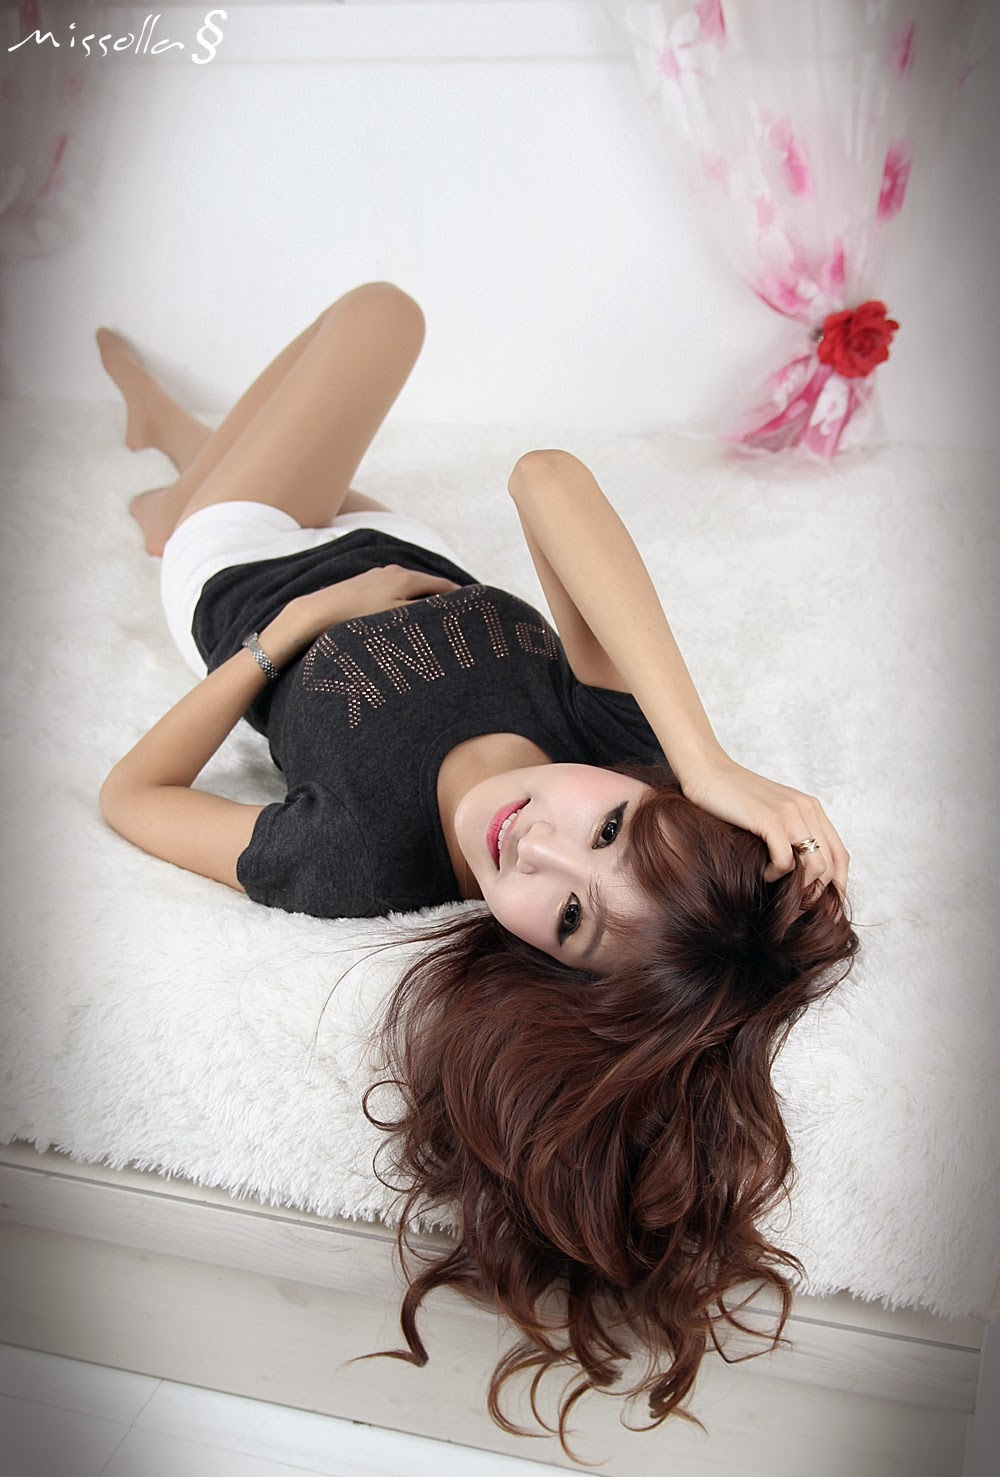 4 Jo In Young - very cute asian girl-girlcute4u.blogspot.com